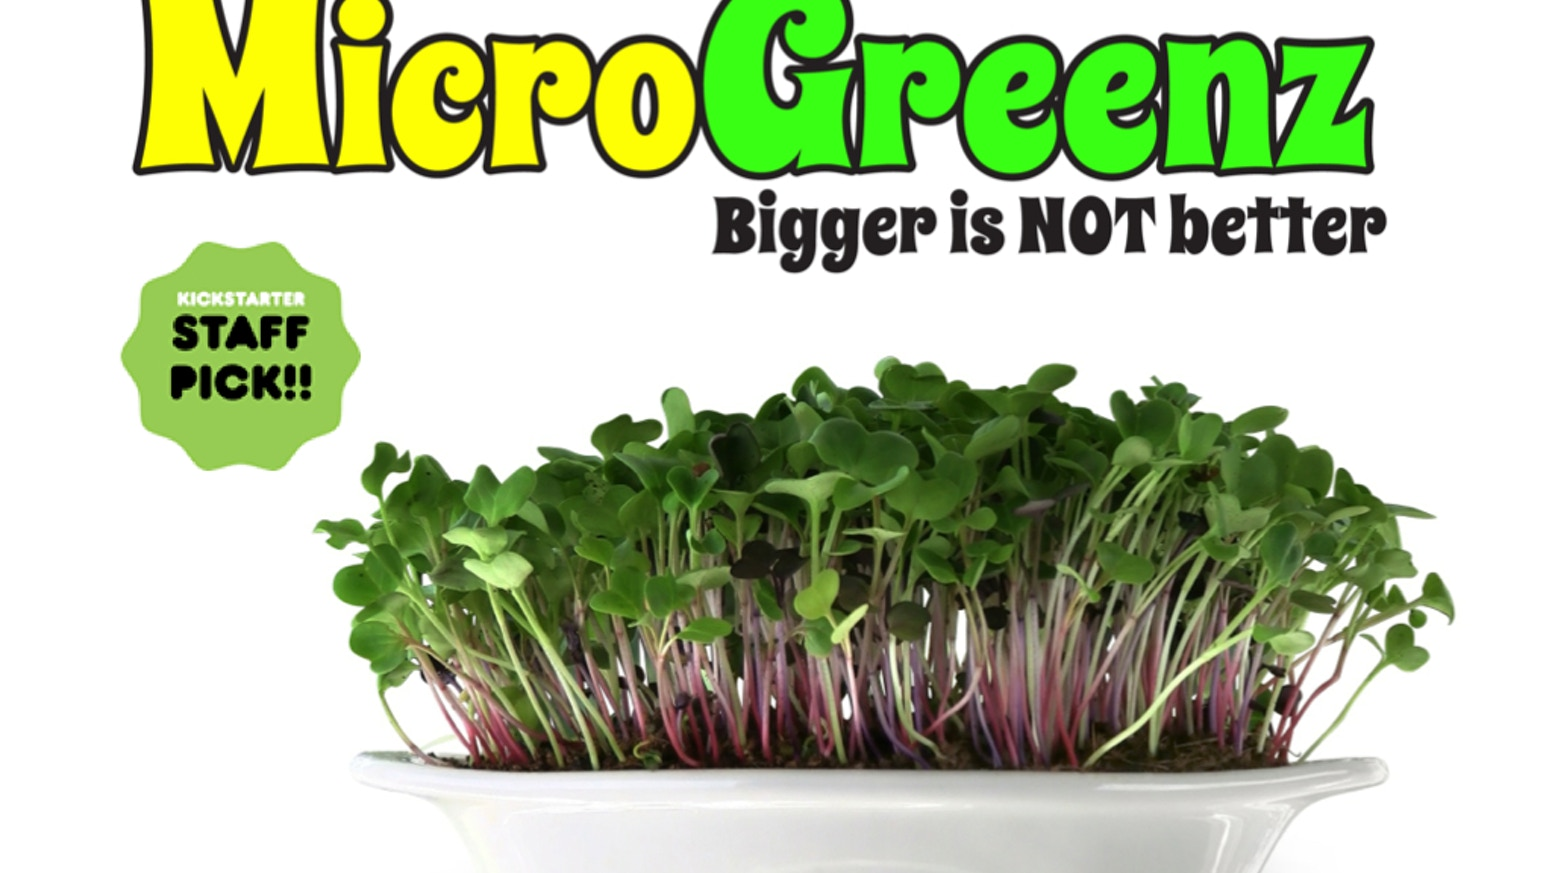 MicroGreenz - Stunning décor. A delectable microgreen garnish. Delicious, fresh, year-round mini veggies even a child could grow.